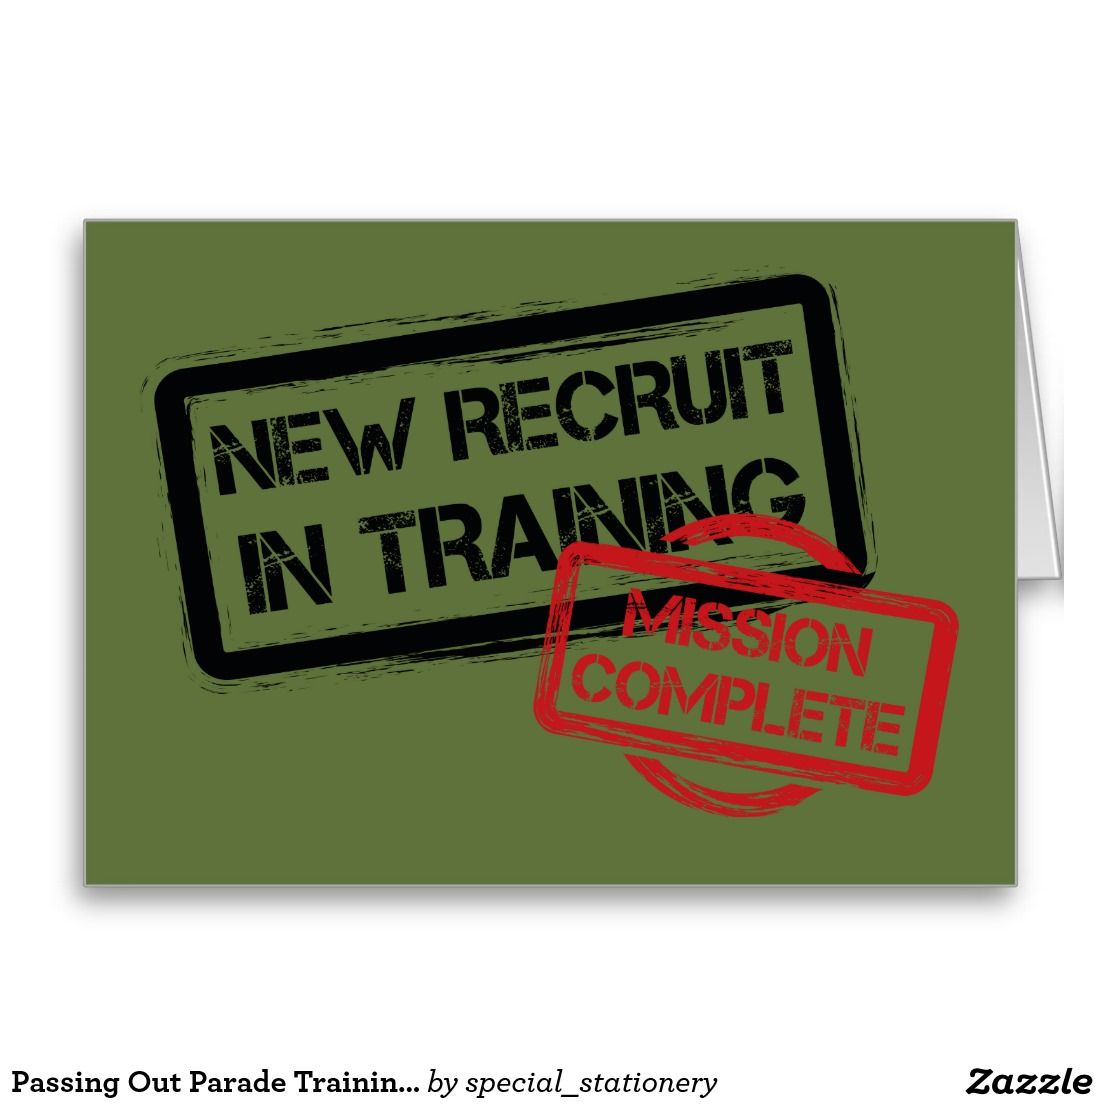 Passing Out Parade Training Complete British Army Card British